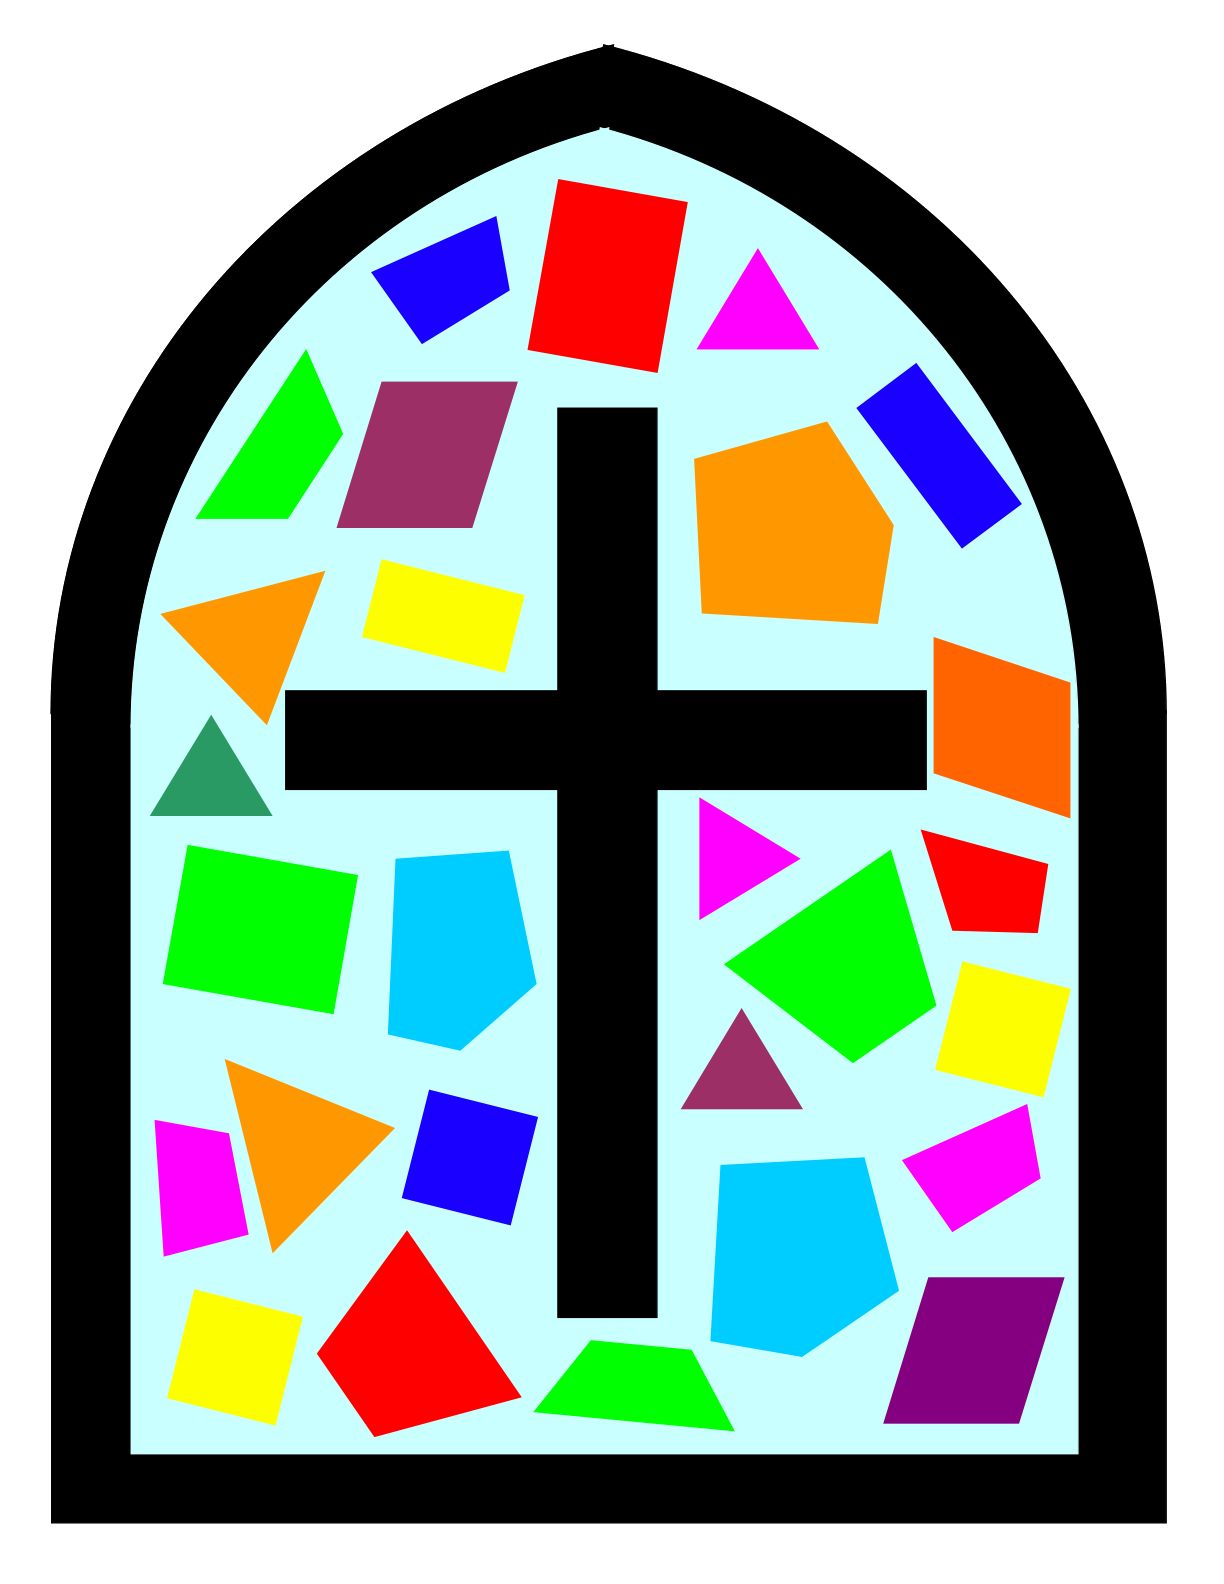 Sunday school news clipart picture black and white stock Sola Publishing - News and Feedback: Activity (Series A3 - Lesson 6 ... picture black and white stock